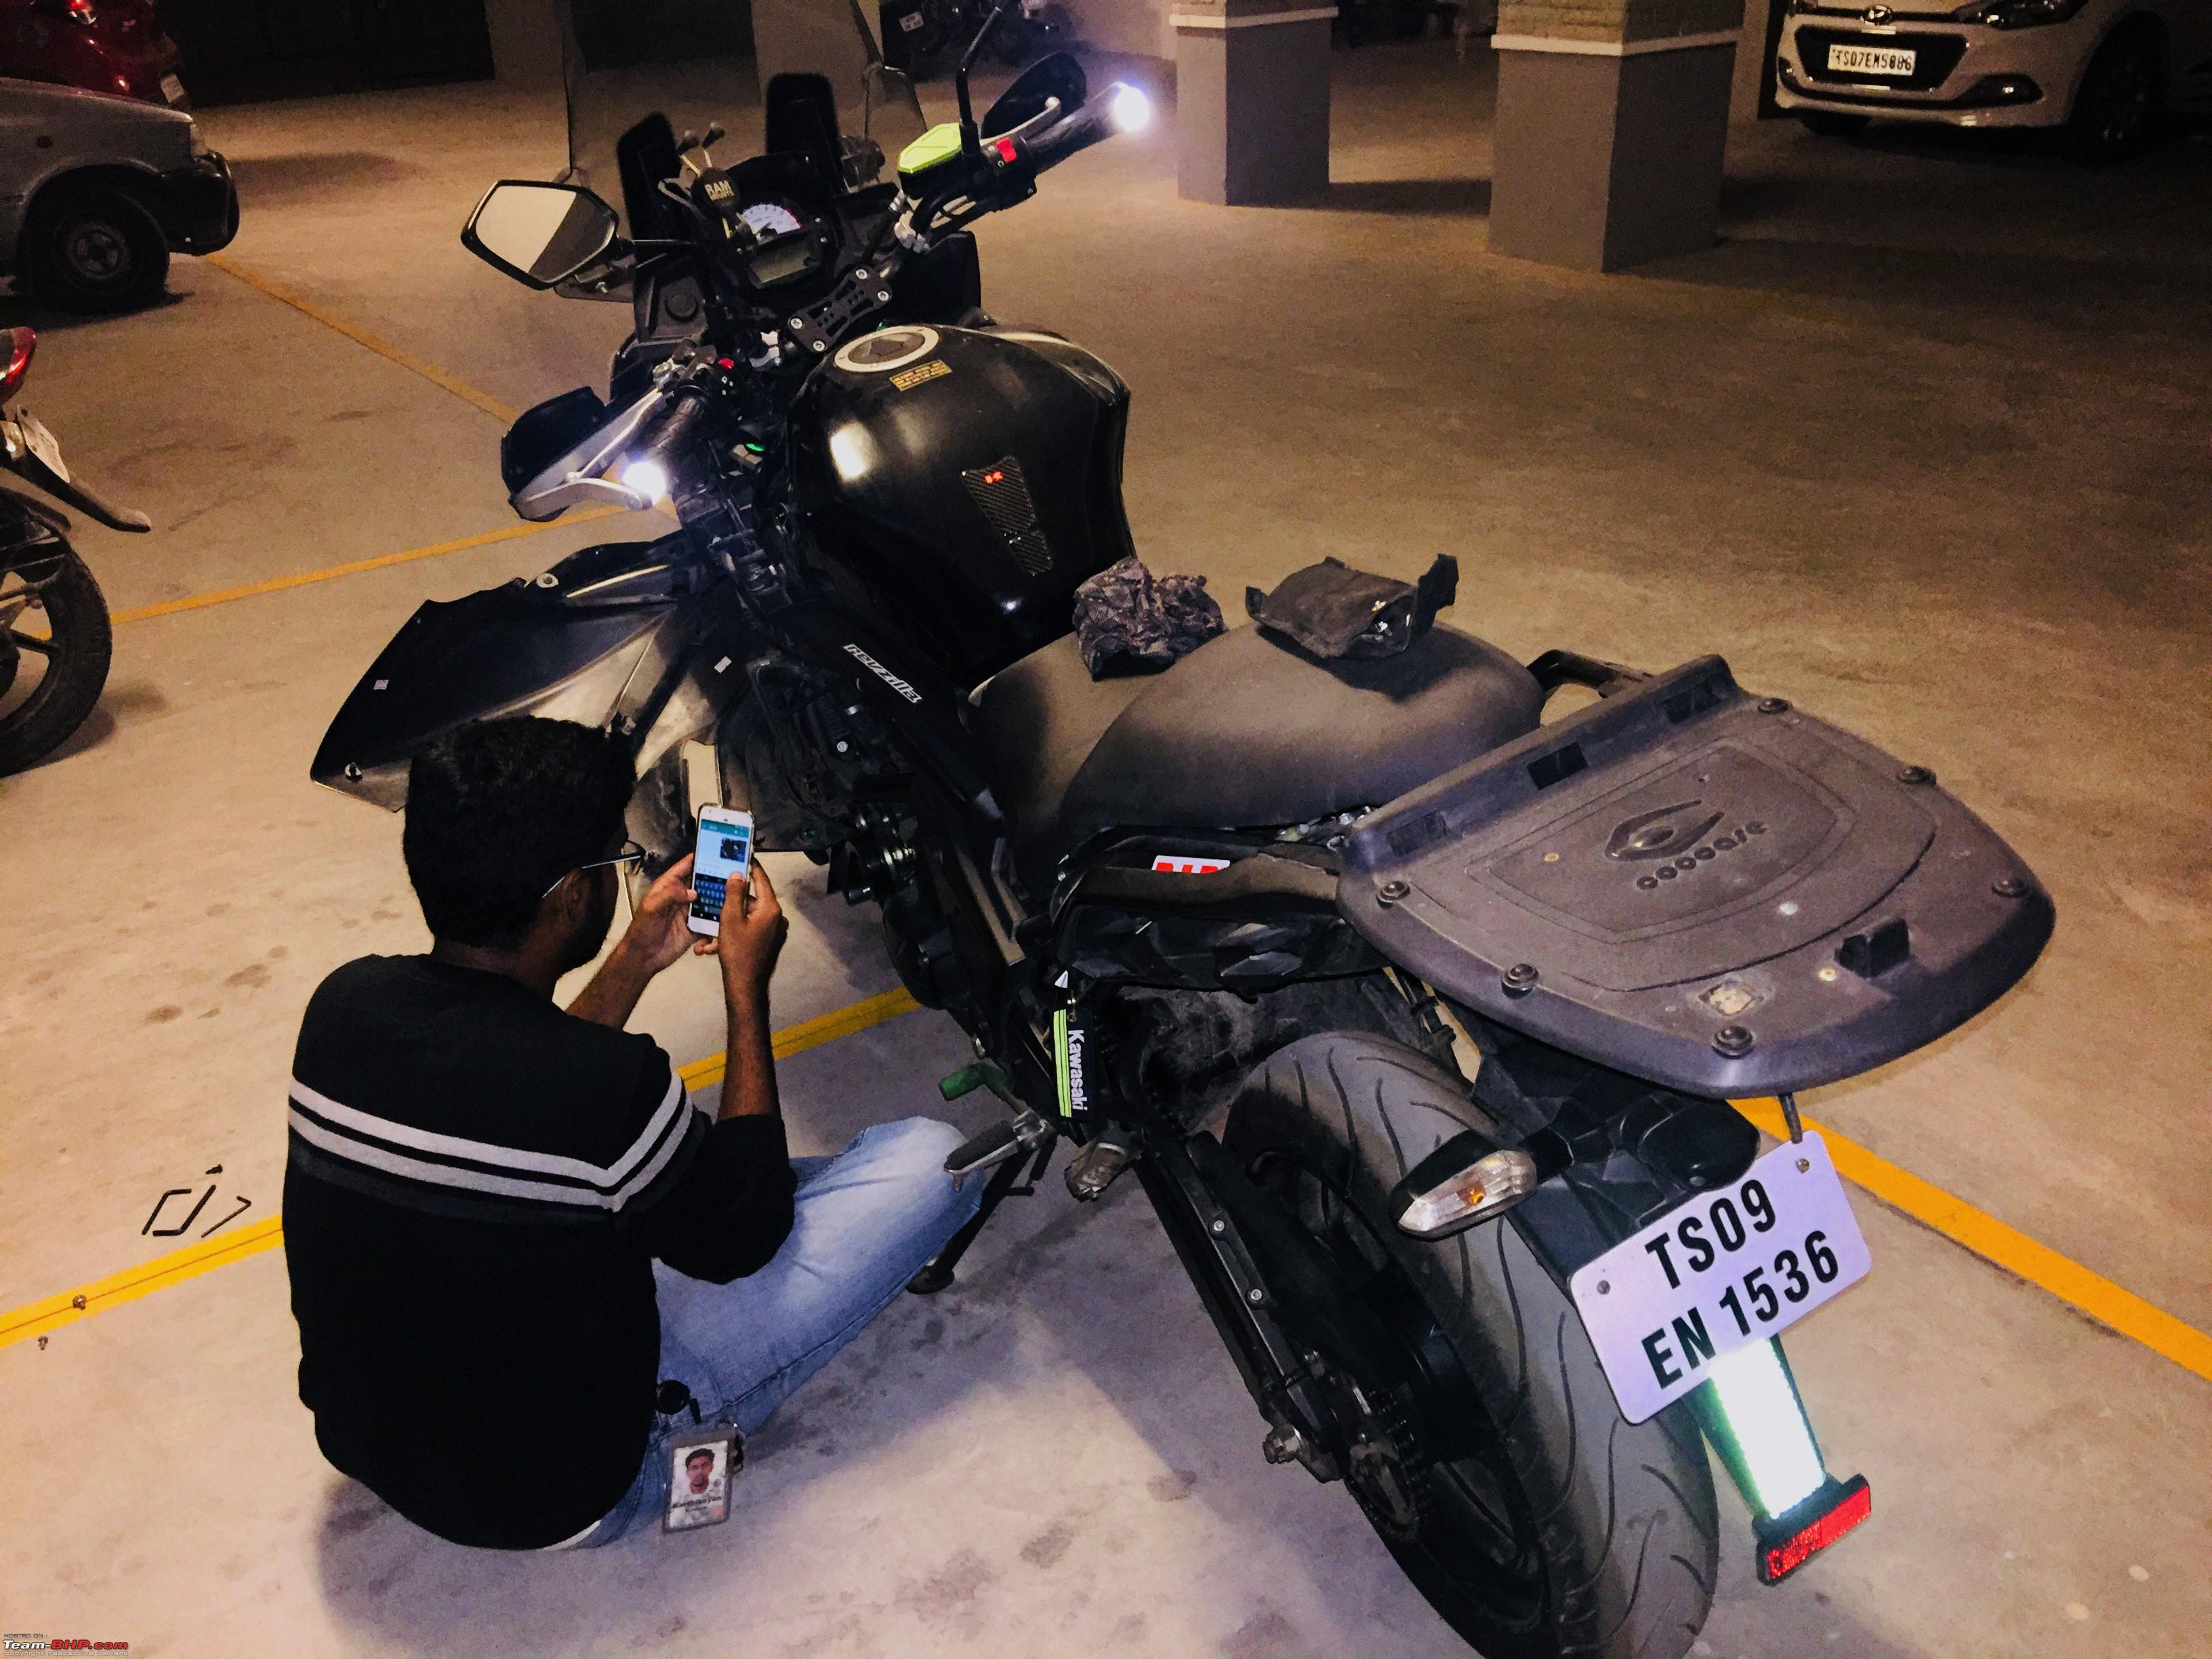 Kawasaki Versys 650: The good times with my 'Dark Knight' begin